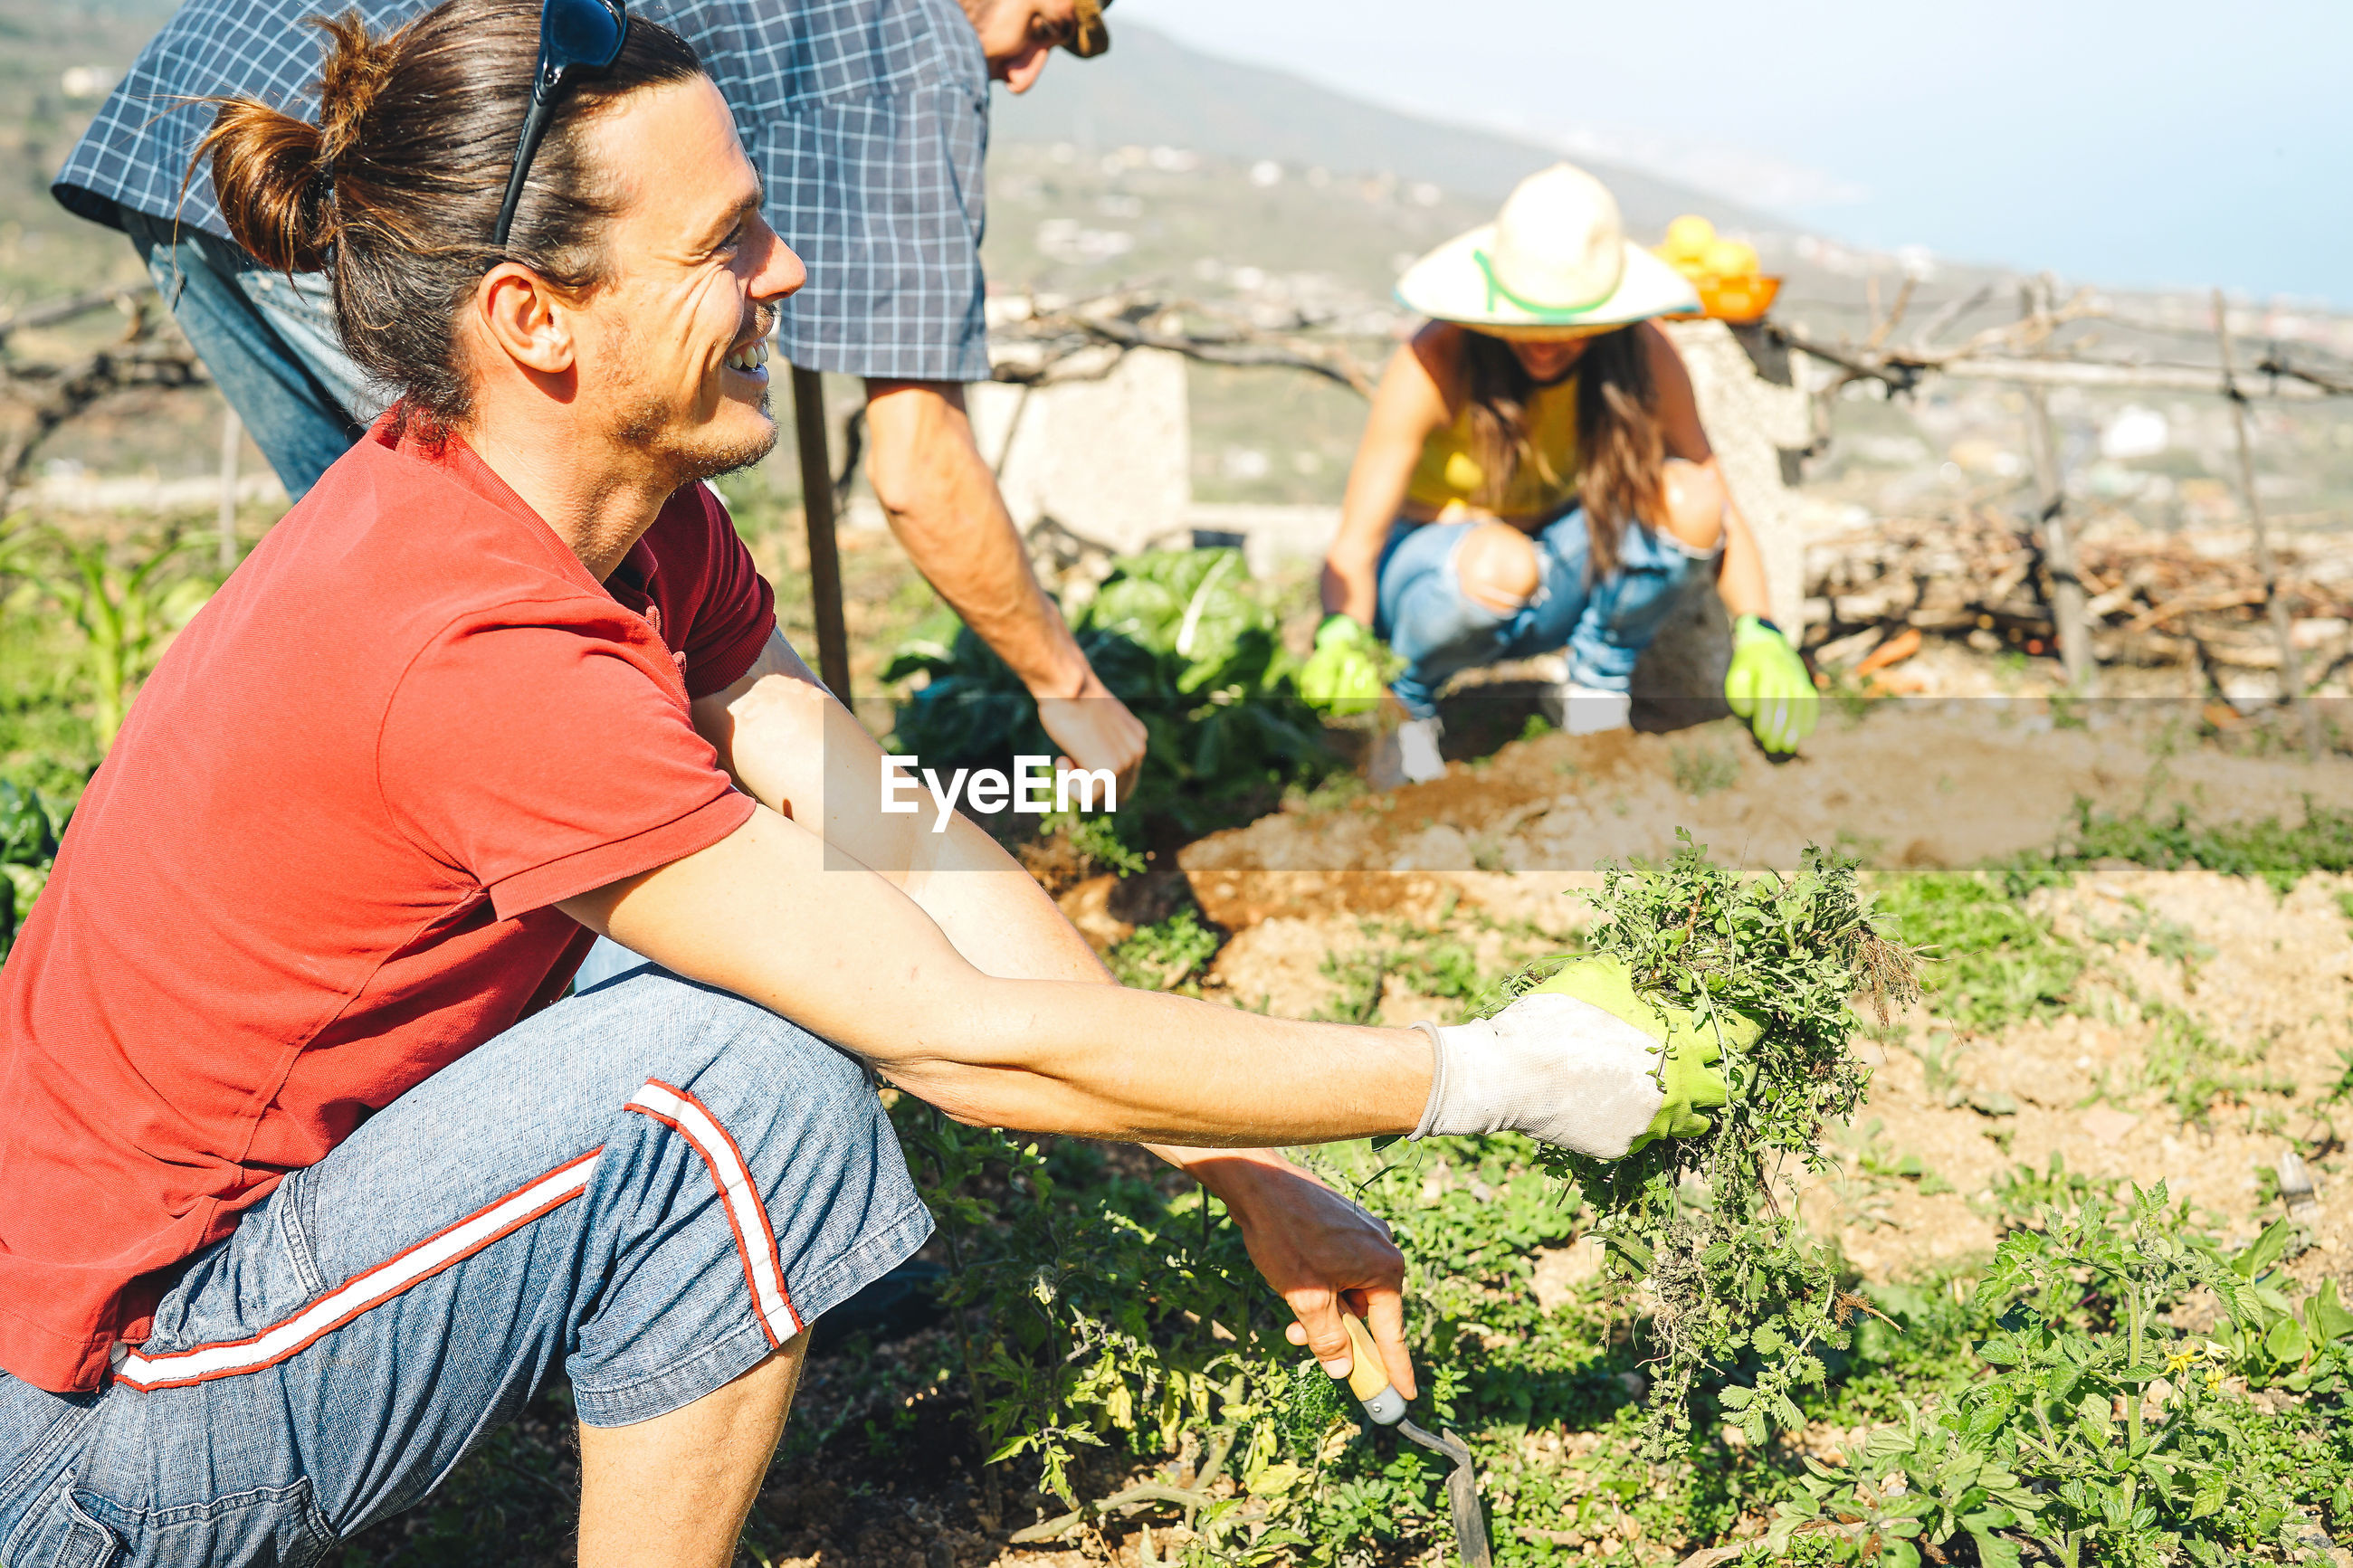 Friends gardening vegetables on farm during sunny day